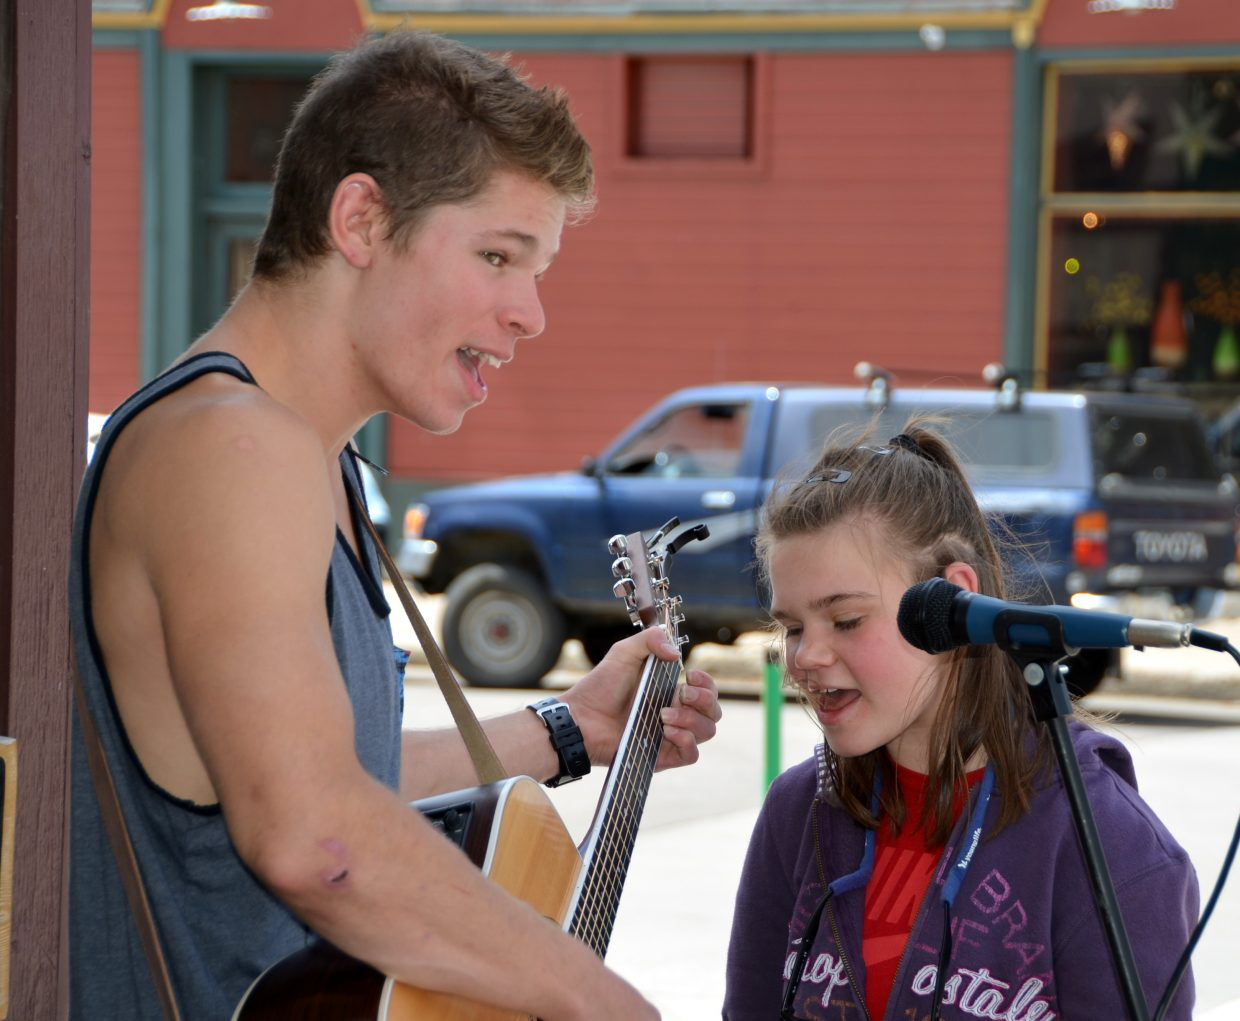 Steamboat Springs High School senior Guerin Lewis entertained the Memorial Day weekend shoppers at the corner of Ninth Street and Lincoln Avenue, by Fuzziwig's. He received a little singing help from eighth-grader Ellie Zwak on a few songs. Submitted by: Shannon Lukens